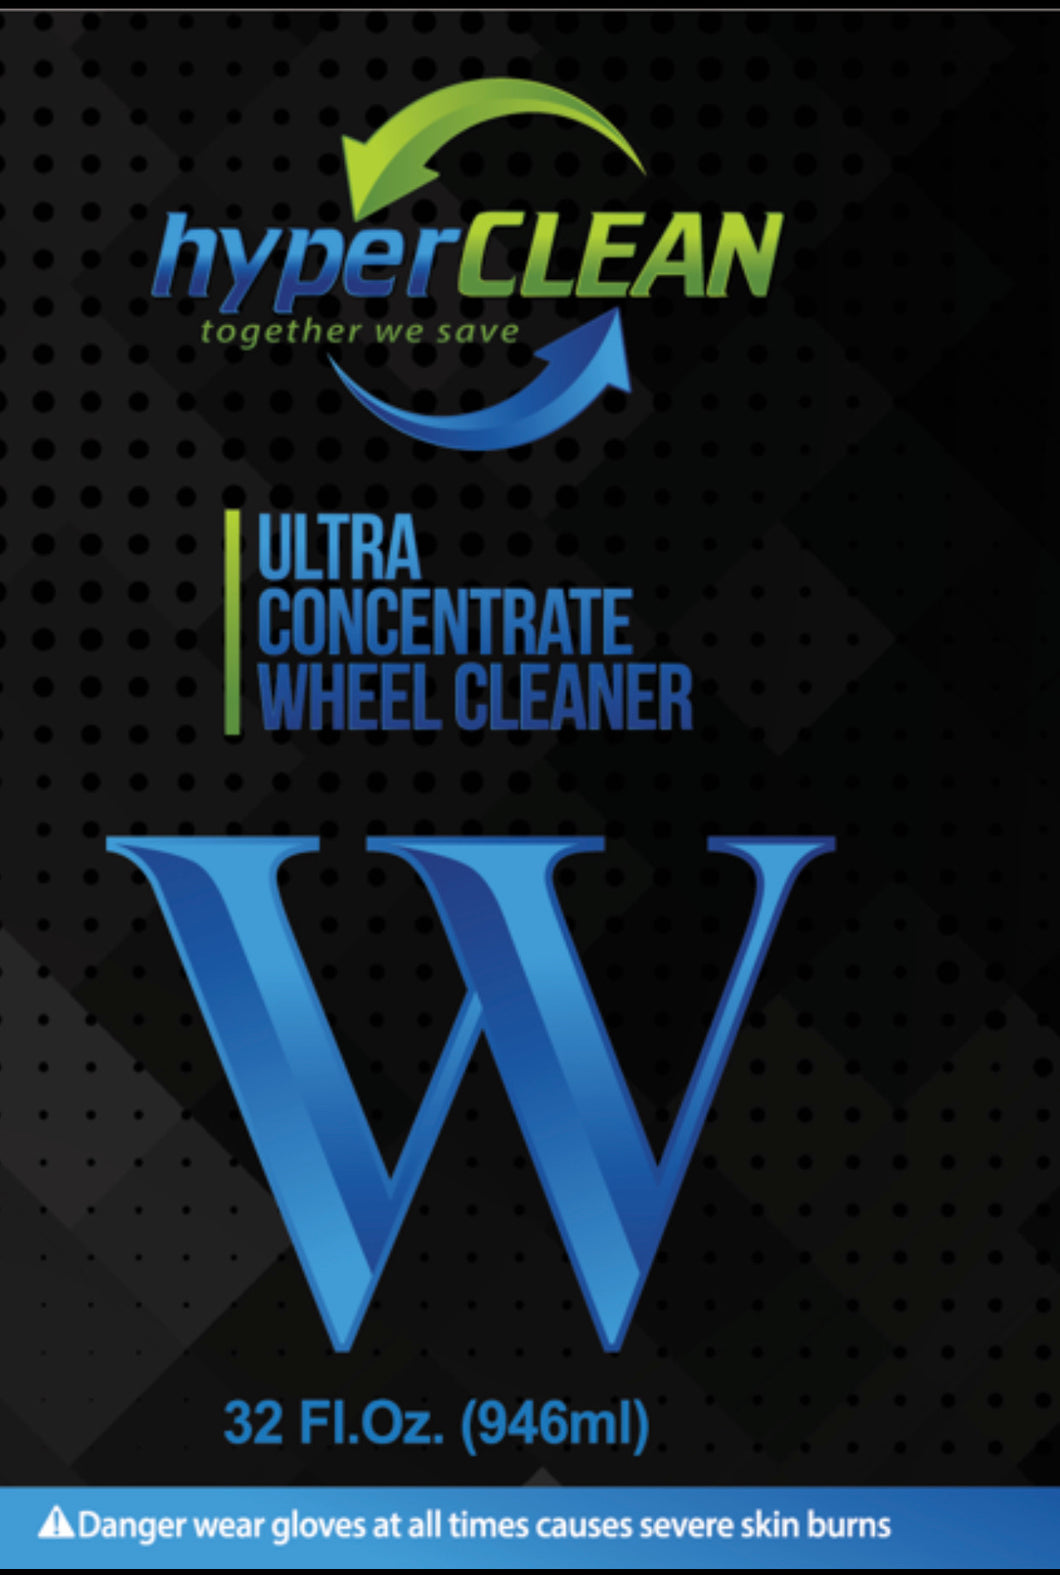 hyperCLEAN W Cube Label